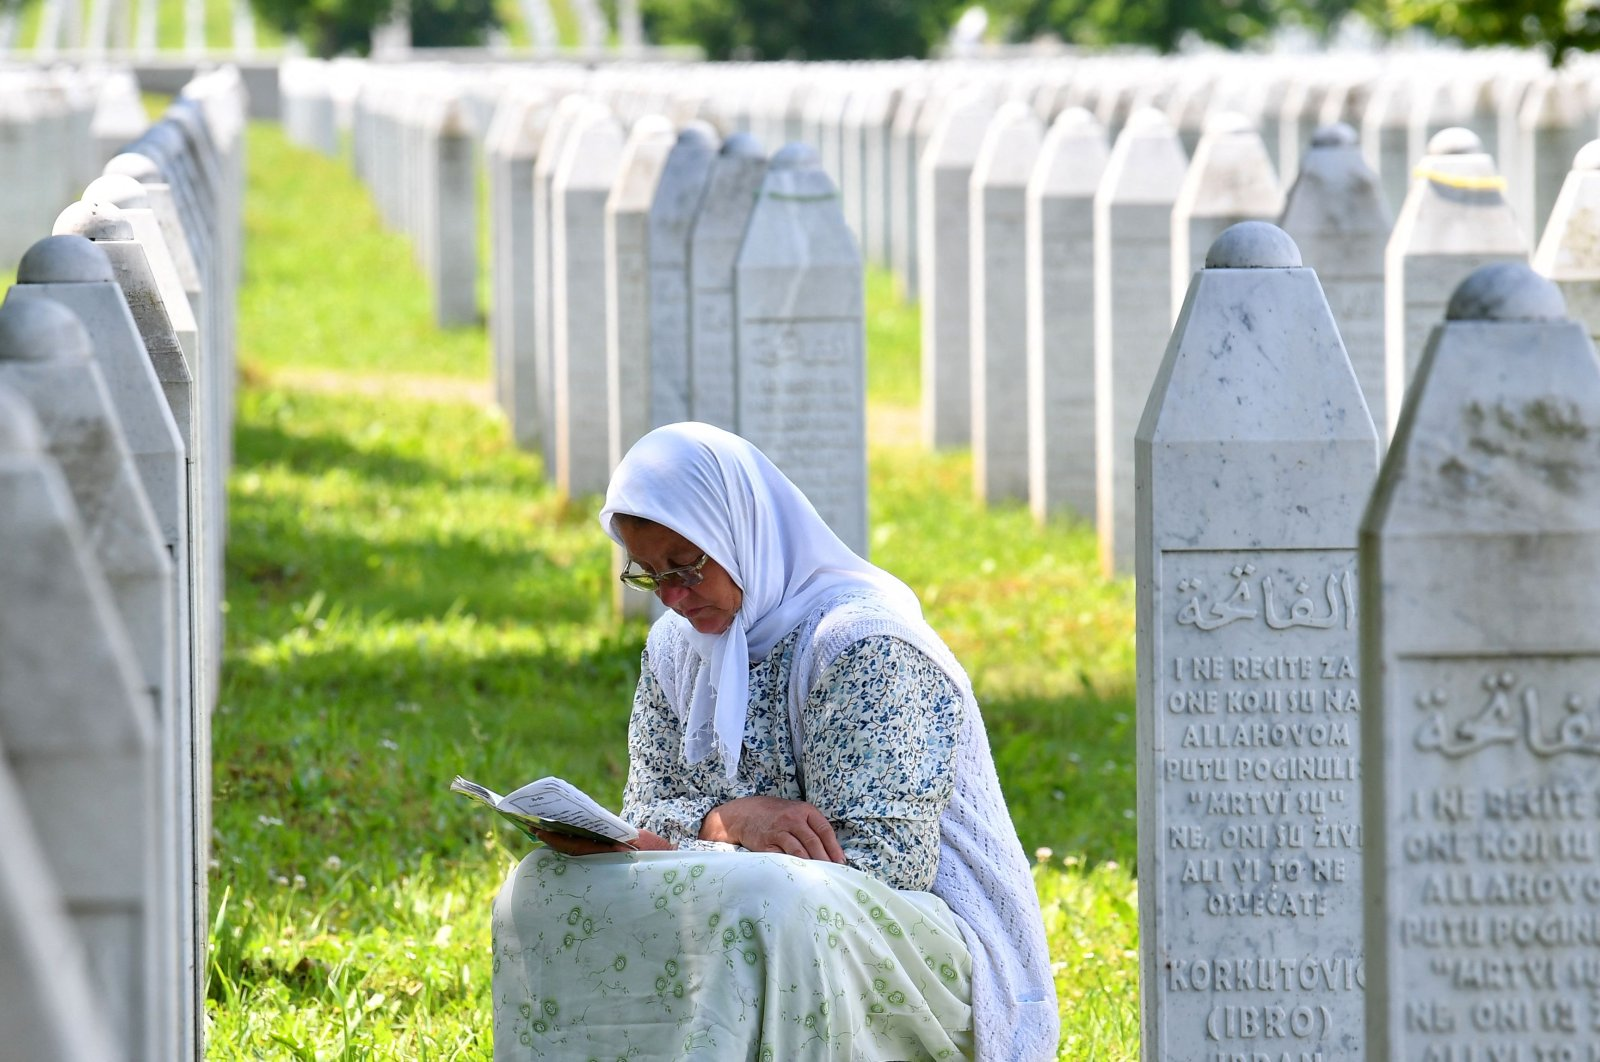 A Bosnian Muslim woman reads from a book of prayers among gravestones of her relatives who fell as victims of the Srebrenica 1995 massacre at Srebrenica Memorial Cemetery, in Potocari, Bosnia and Herzegovina, June 8, 2021 (AFP Photo)